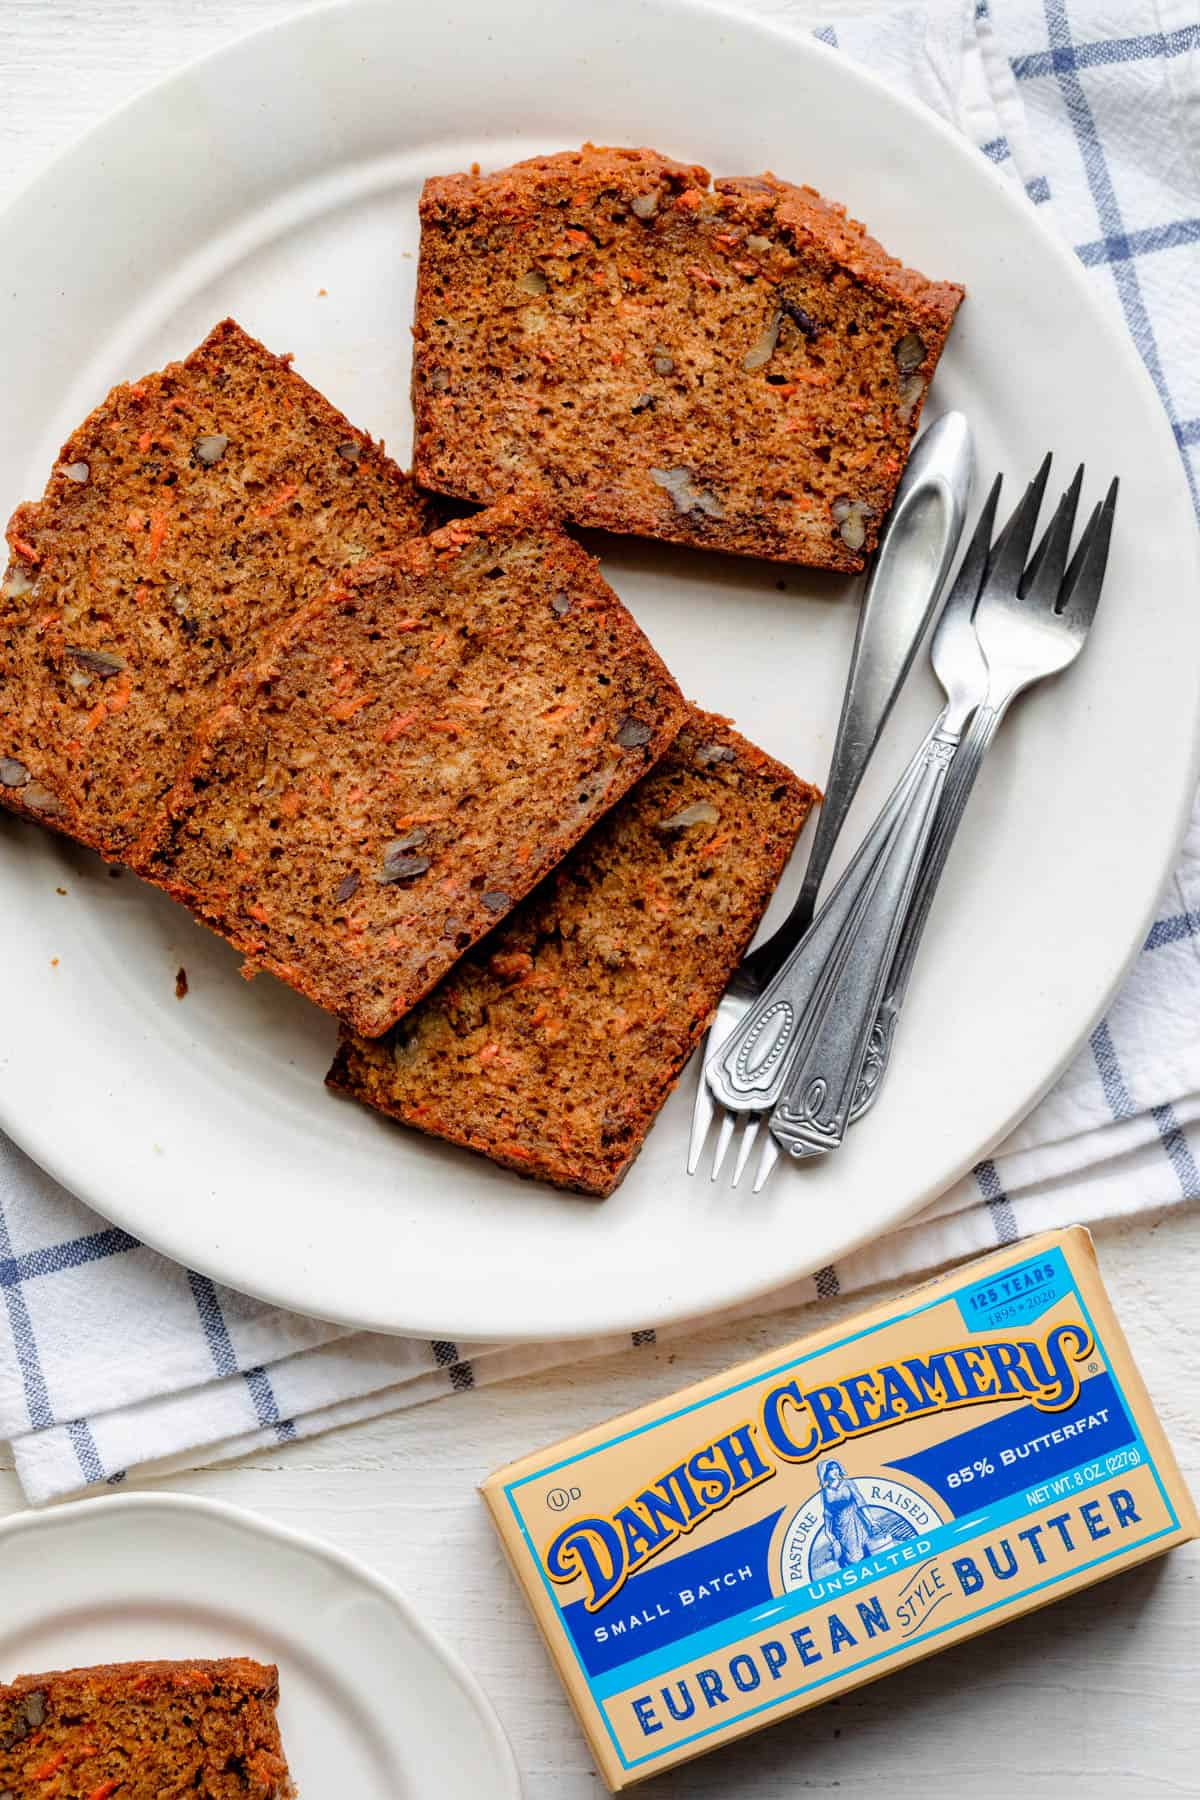 Carrot banana bread served on a plate with Danish Creamery packaging next to it